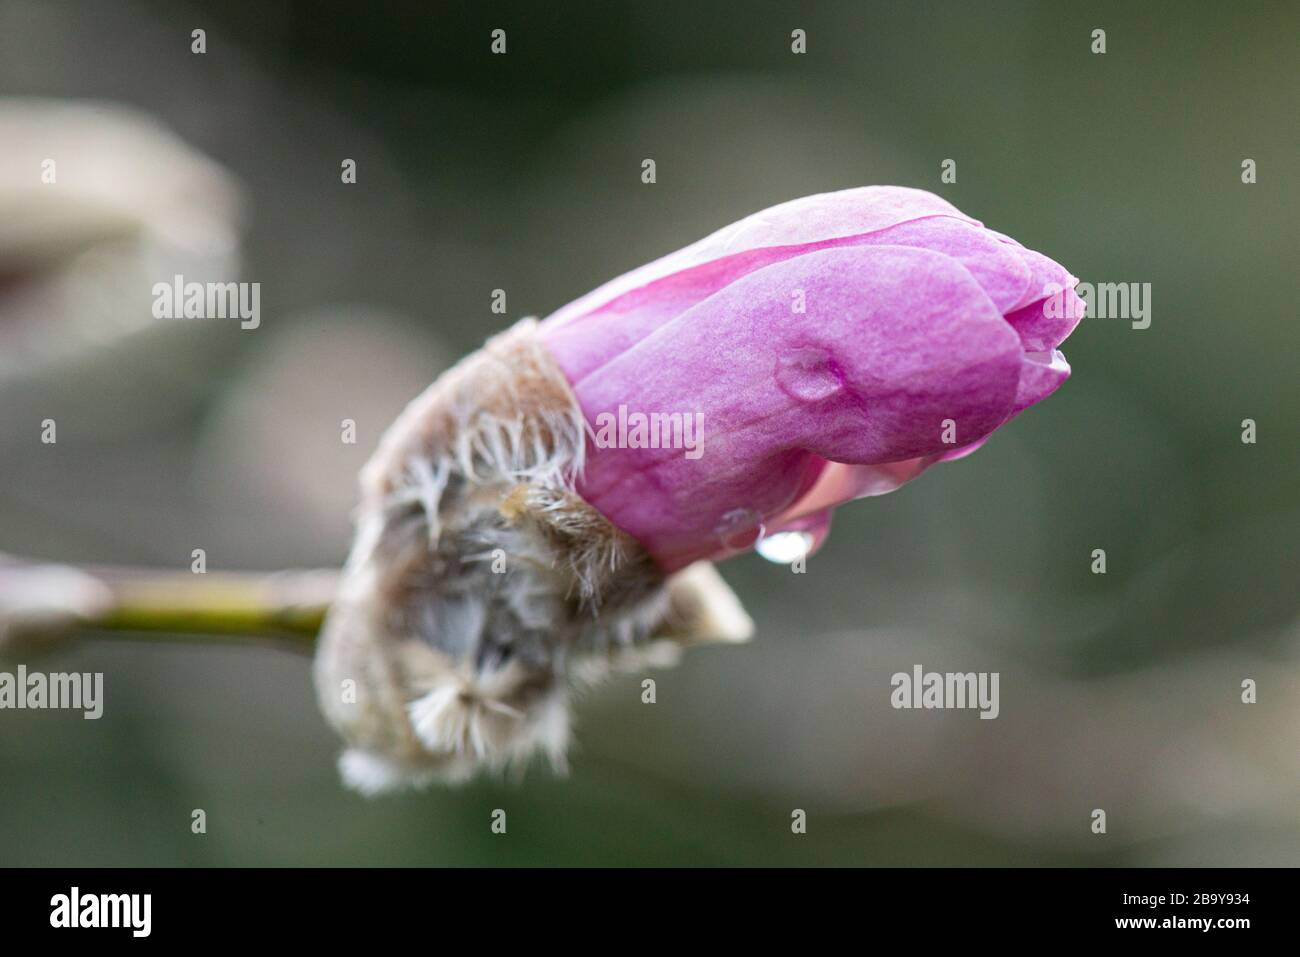 Water droplets on the flower bud of a magnolia 'Leonard Messel' (Magnolia × loebneri 'Leonard Messel') Stock Photo